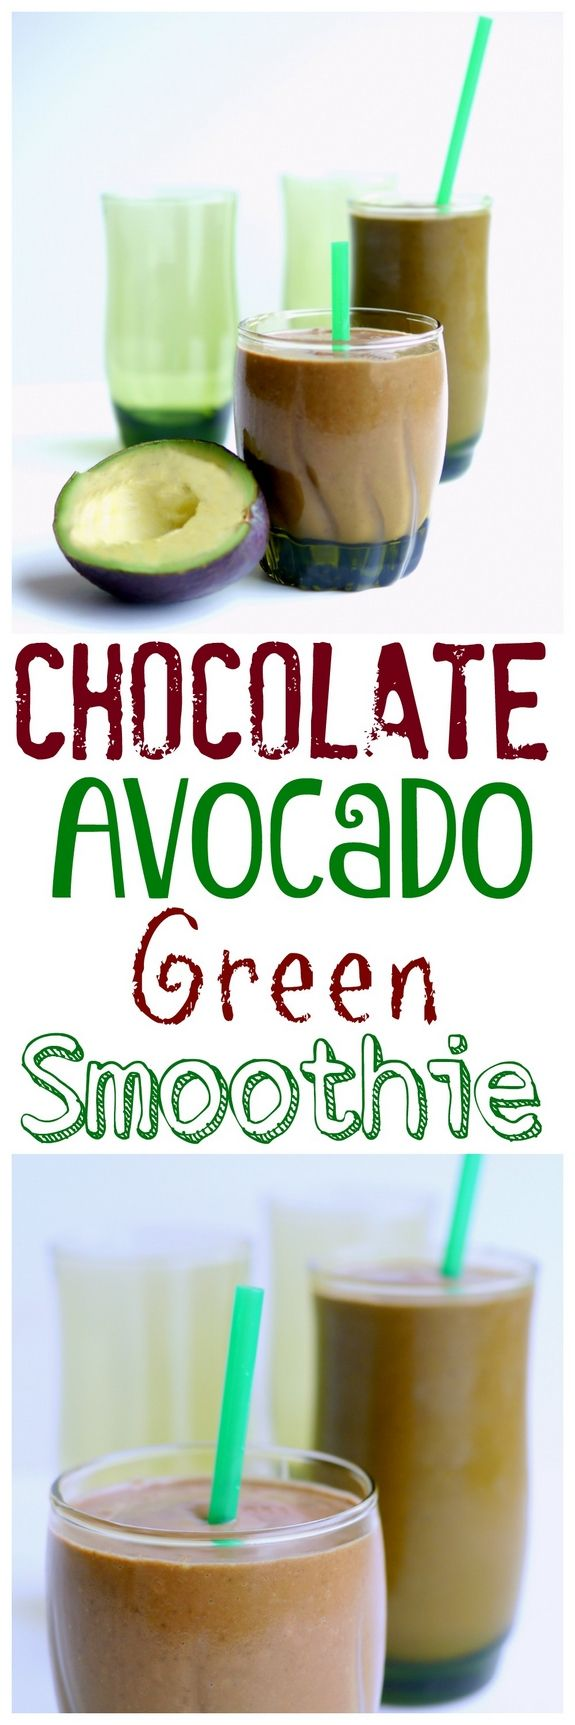 Phase 3 (swap raw cacao nibs for chocolate chips; use unsweetened almond milk) This deep-dark chocolatey shake is a delicious way to get your morning healthy fat + veggies. Serves 2.